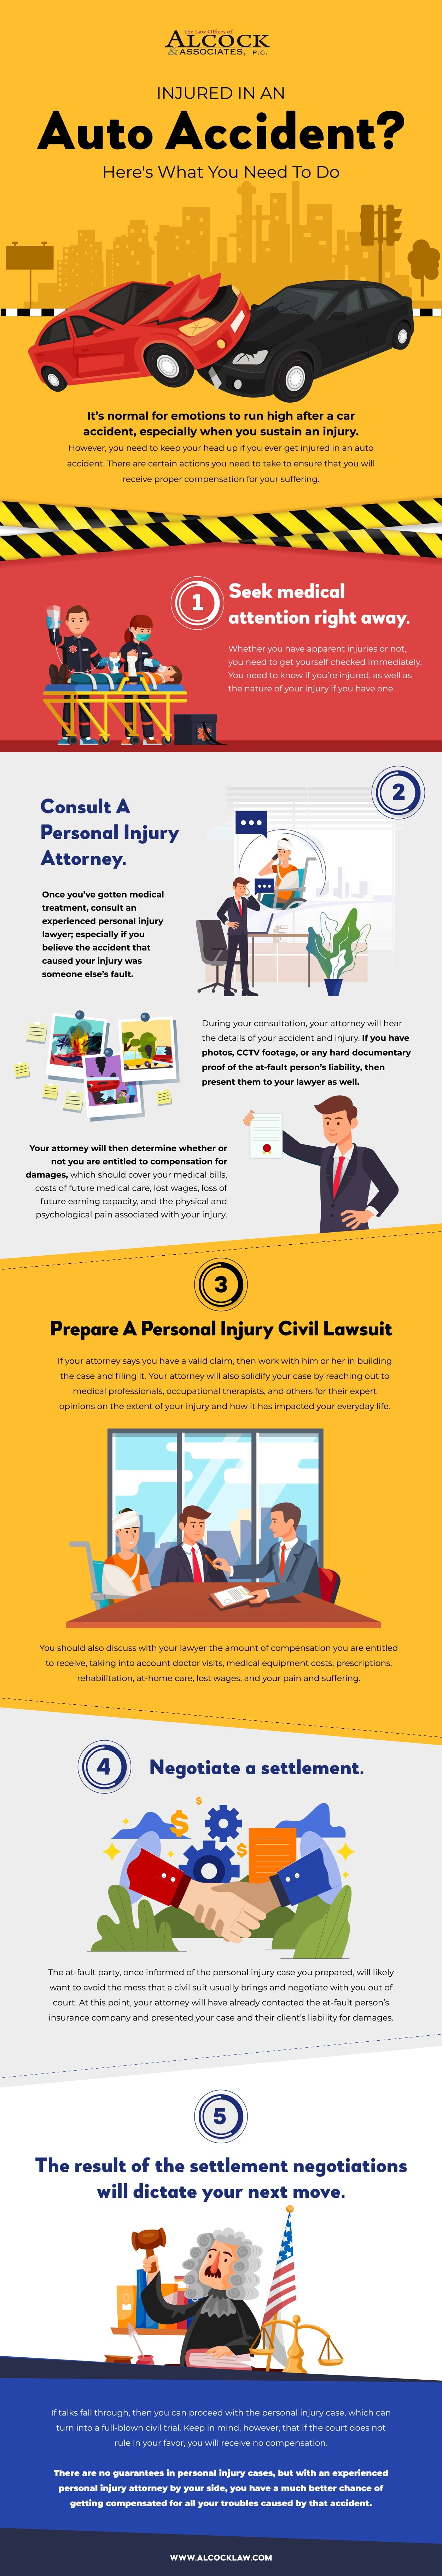 Injured in an Auto Accident? Here's What You Need to Do